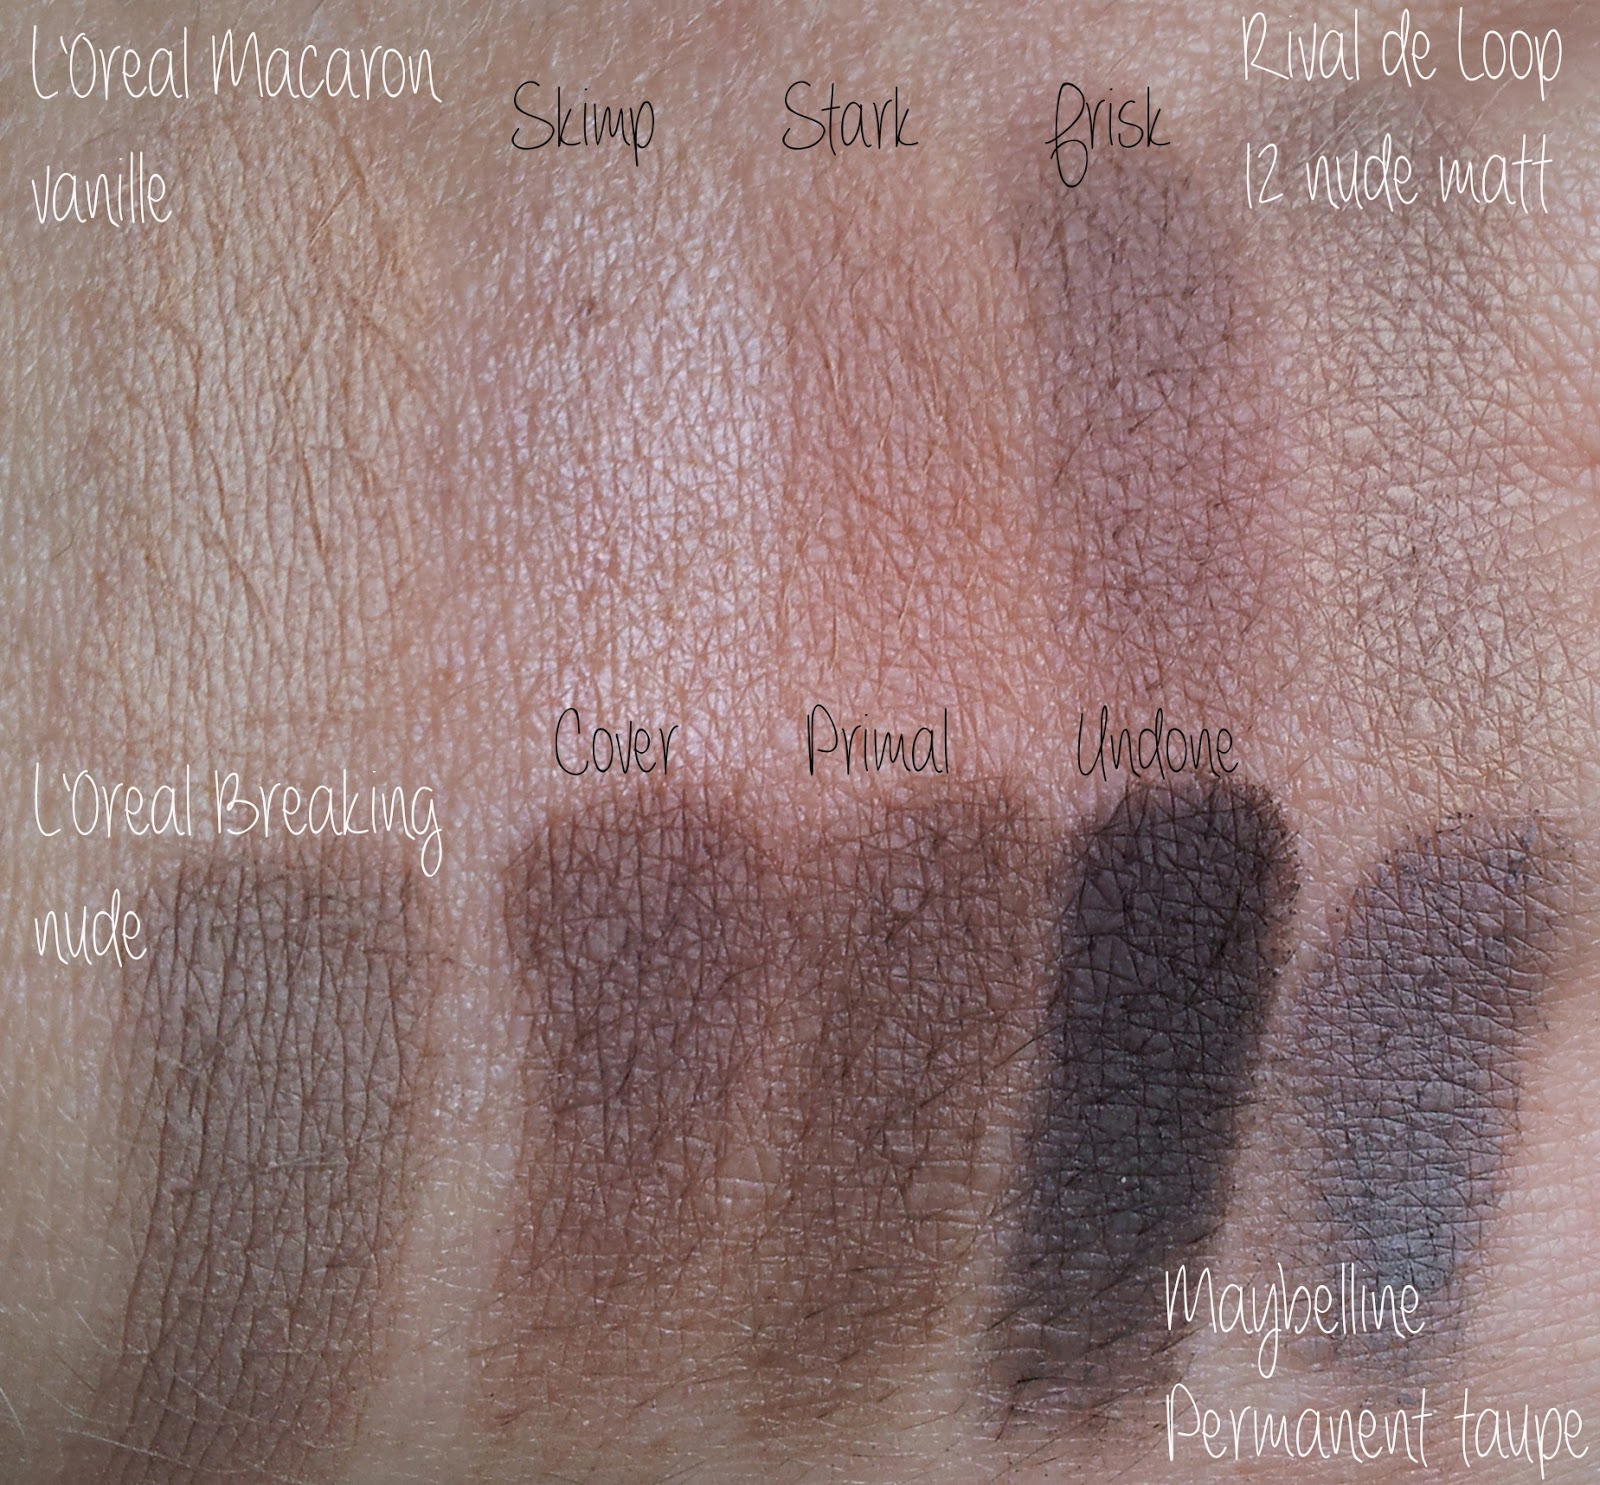 Urban Decay Naked Basics 2 Swatches Vergleich